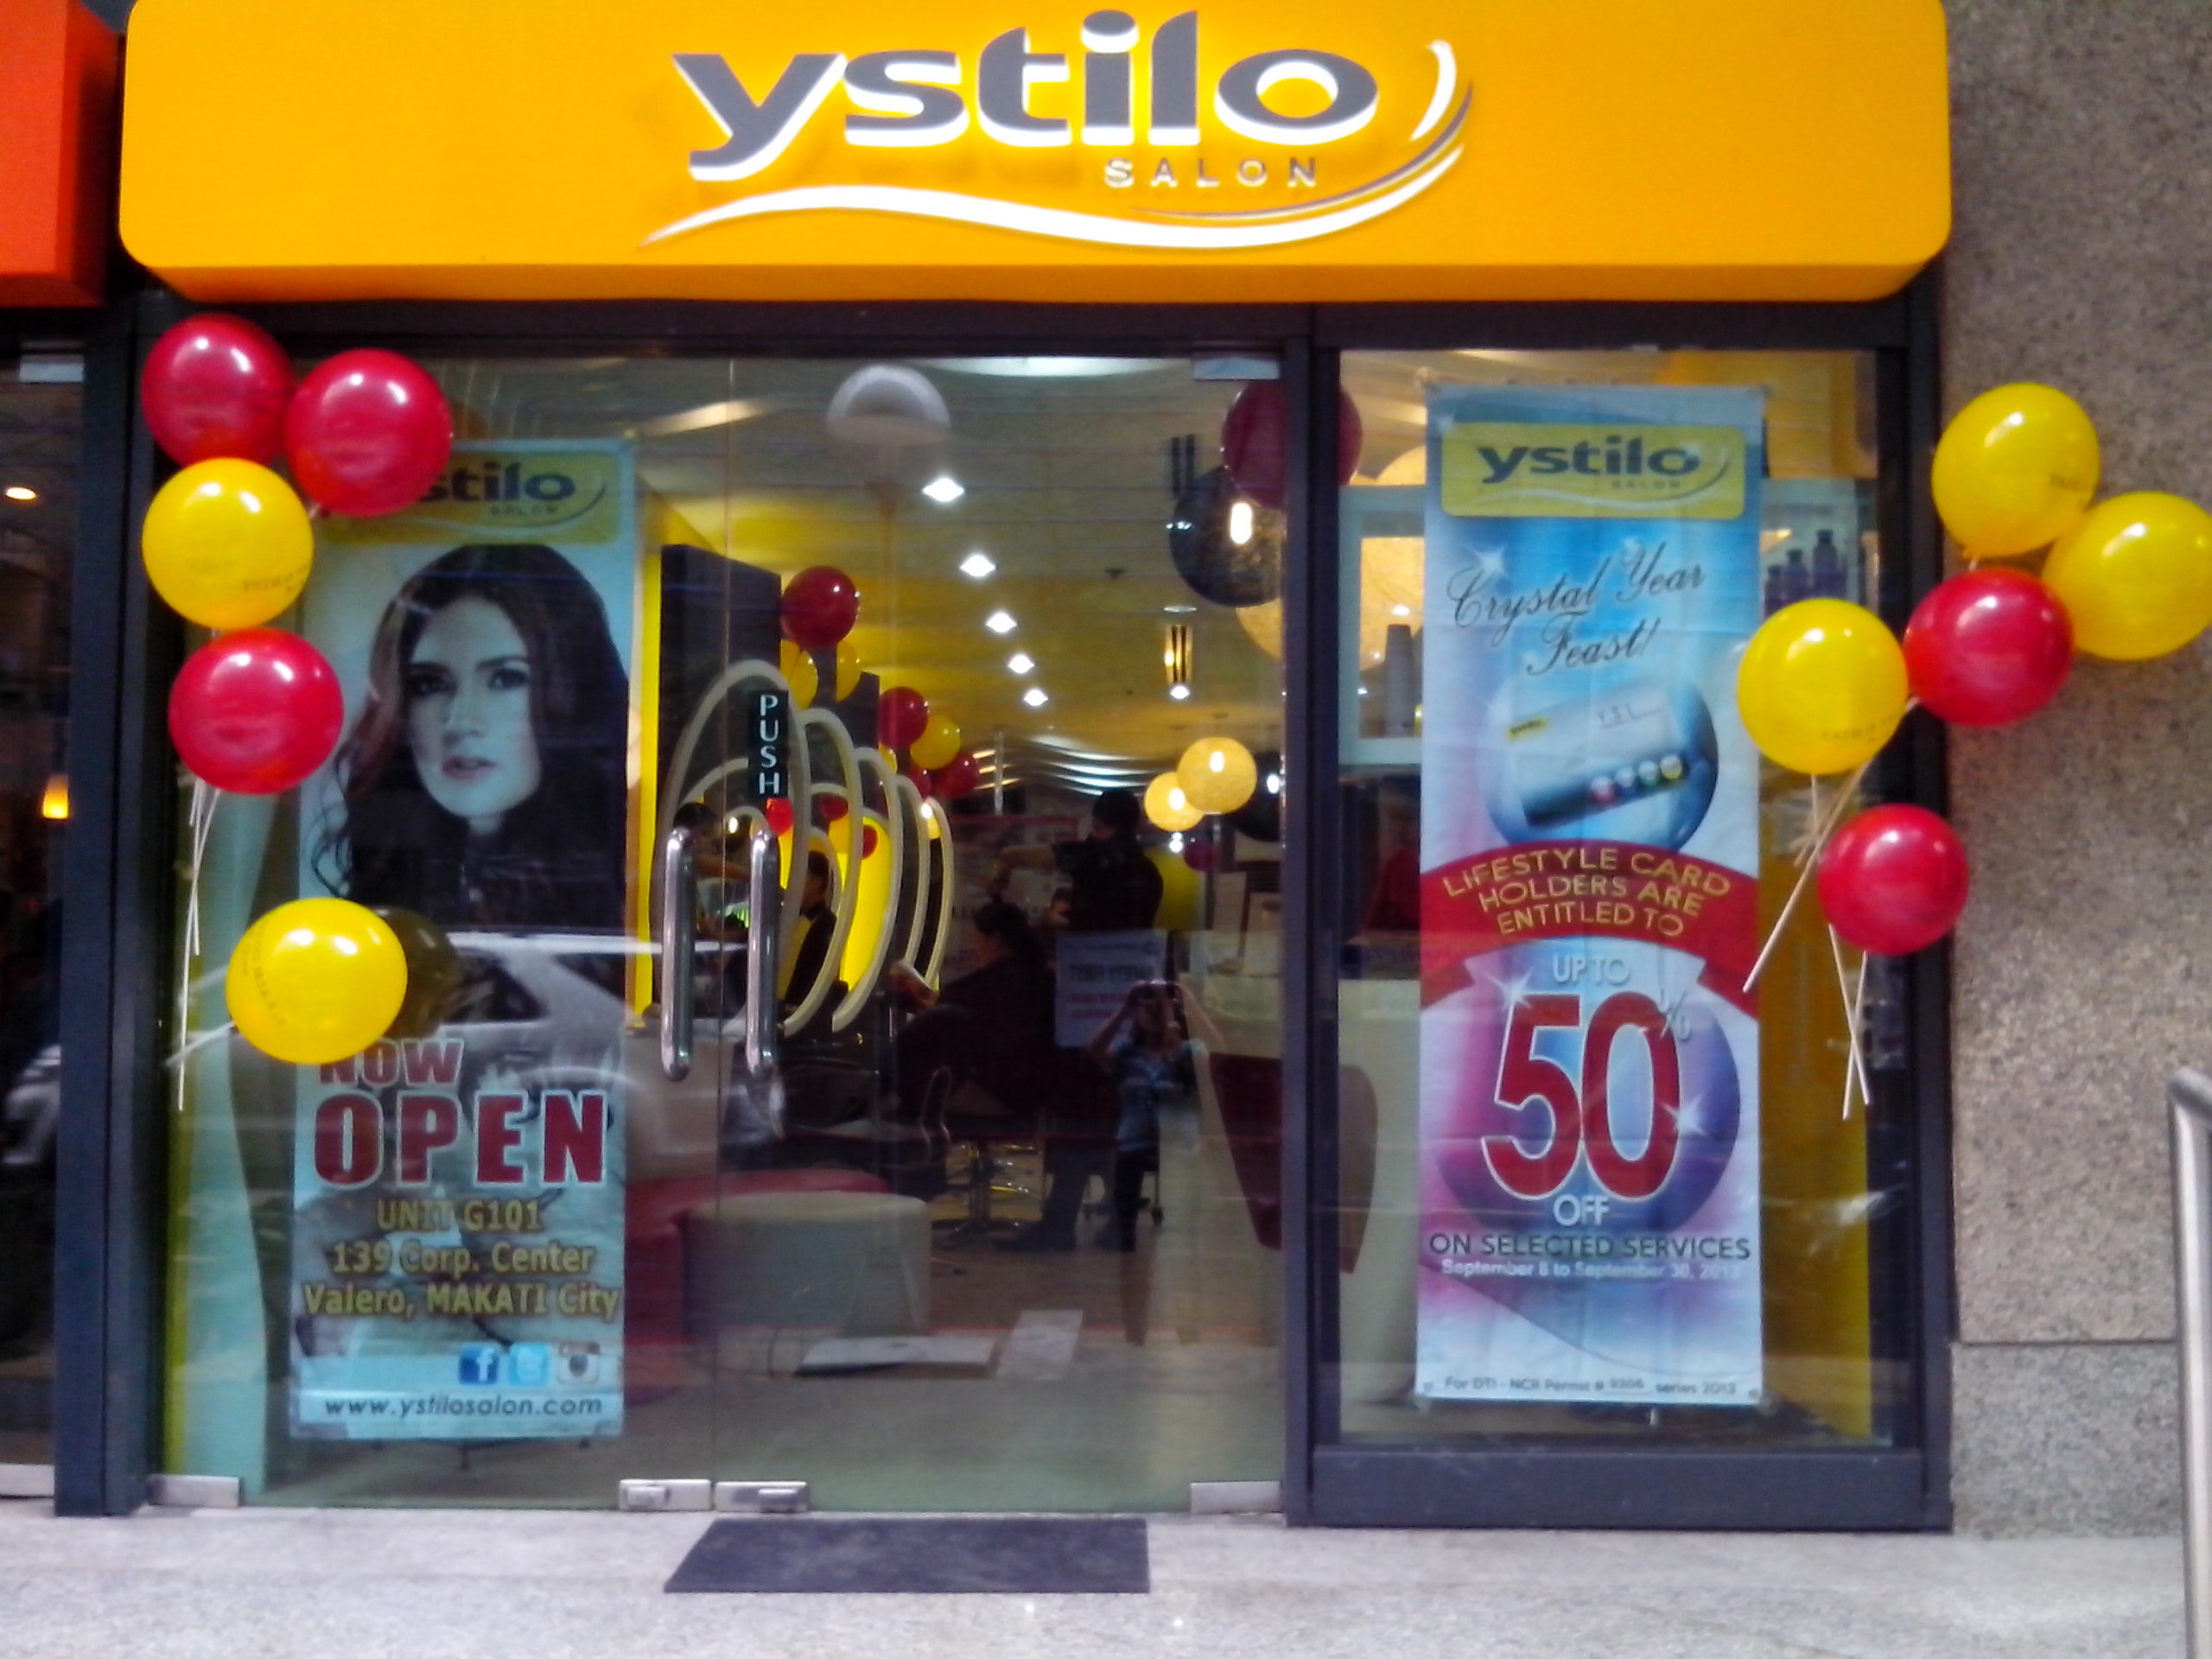 ystilo salon franchise: details, fees and how to ~ ifranchise.ph